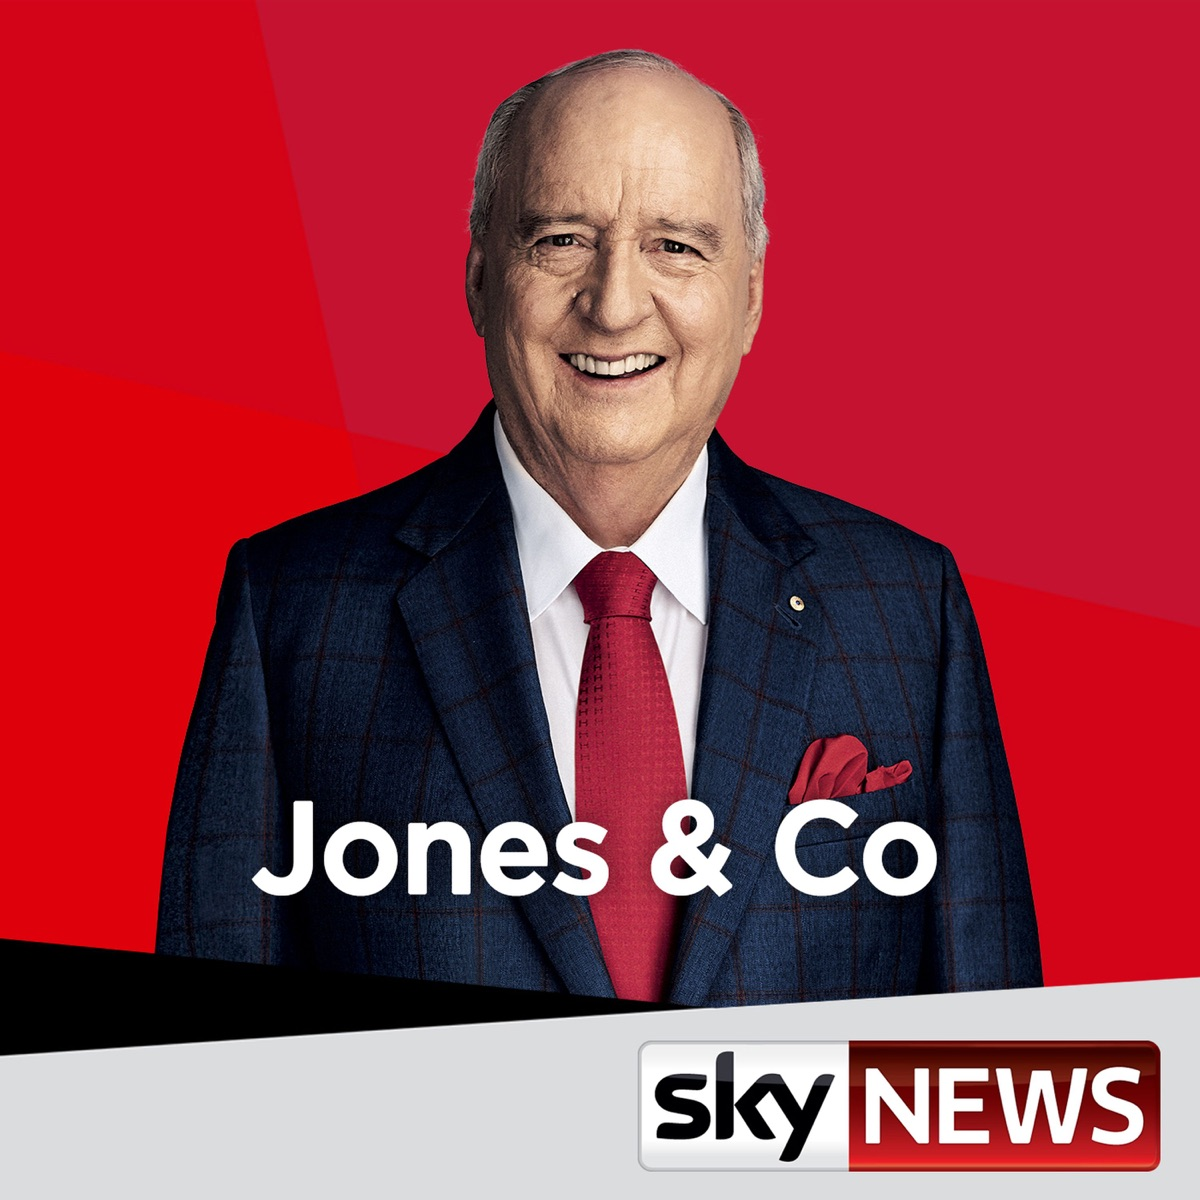 Sky News - Jones & Credlin